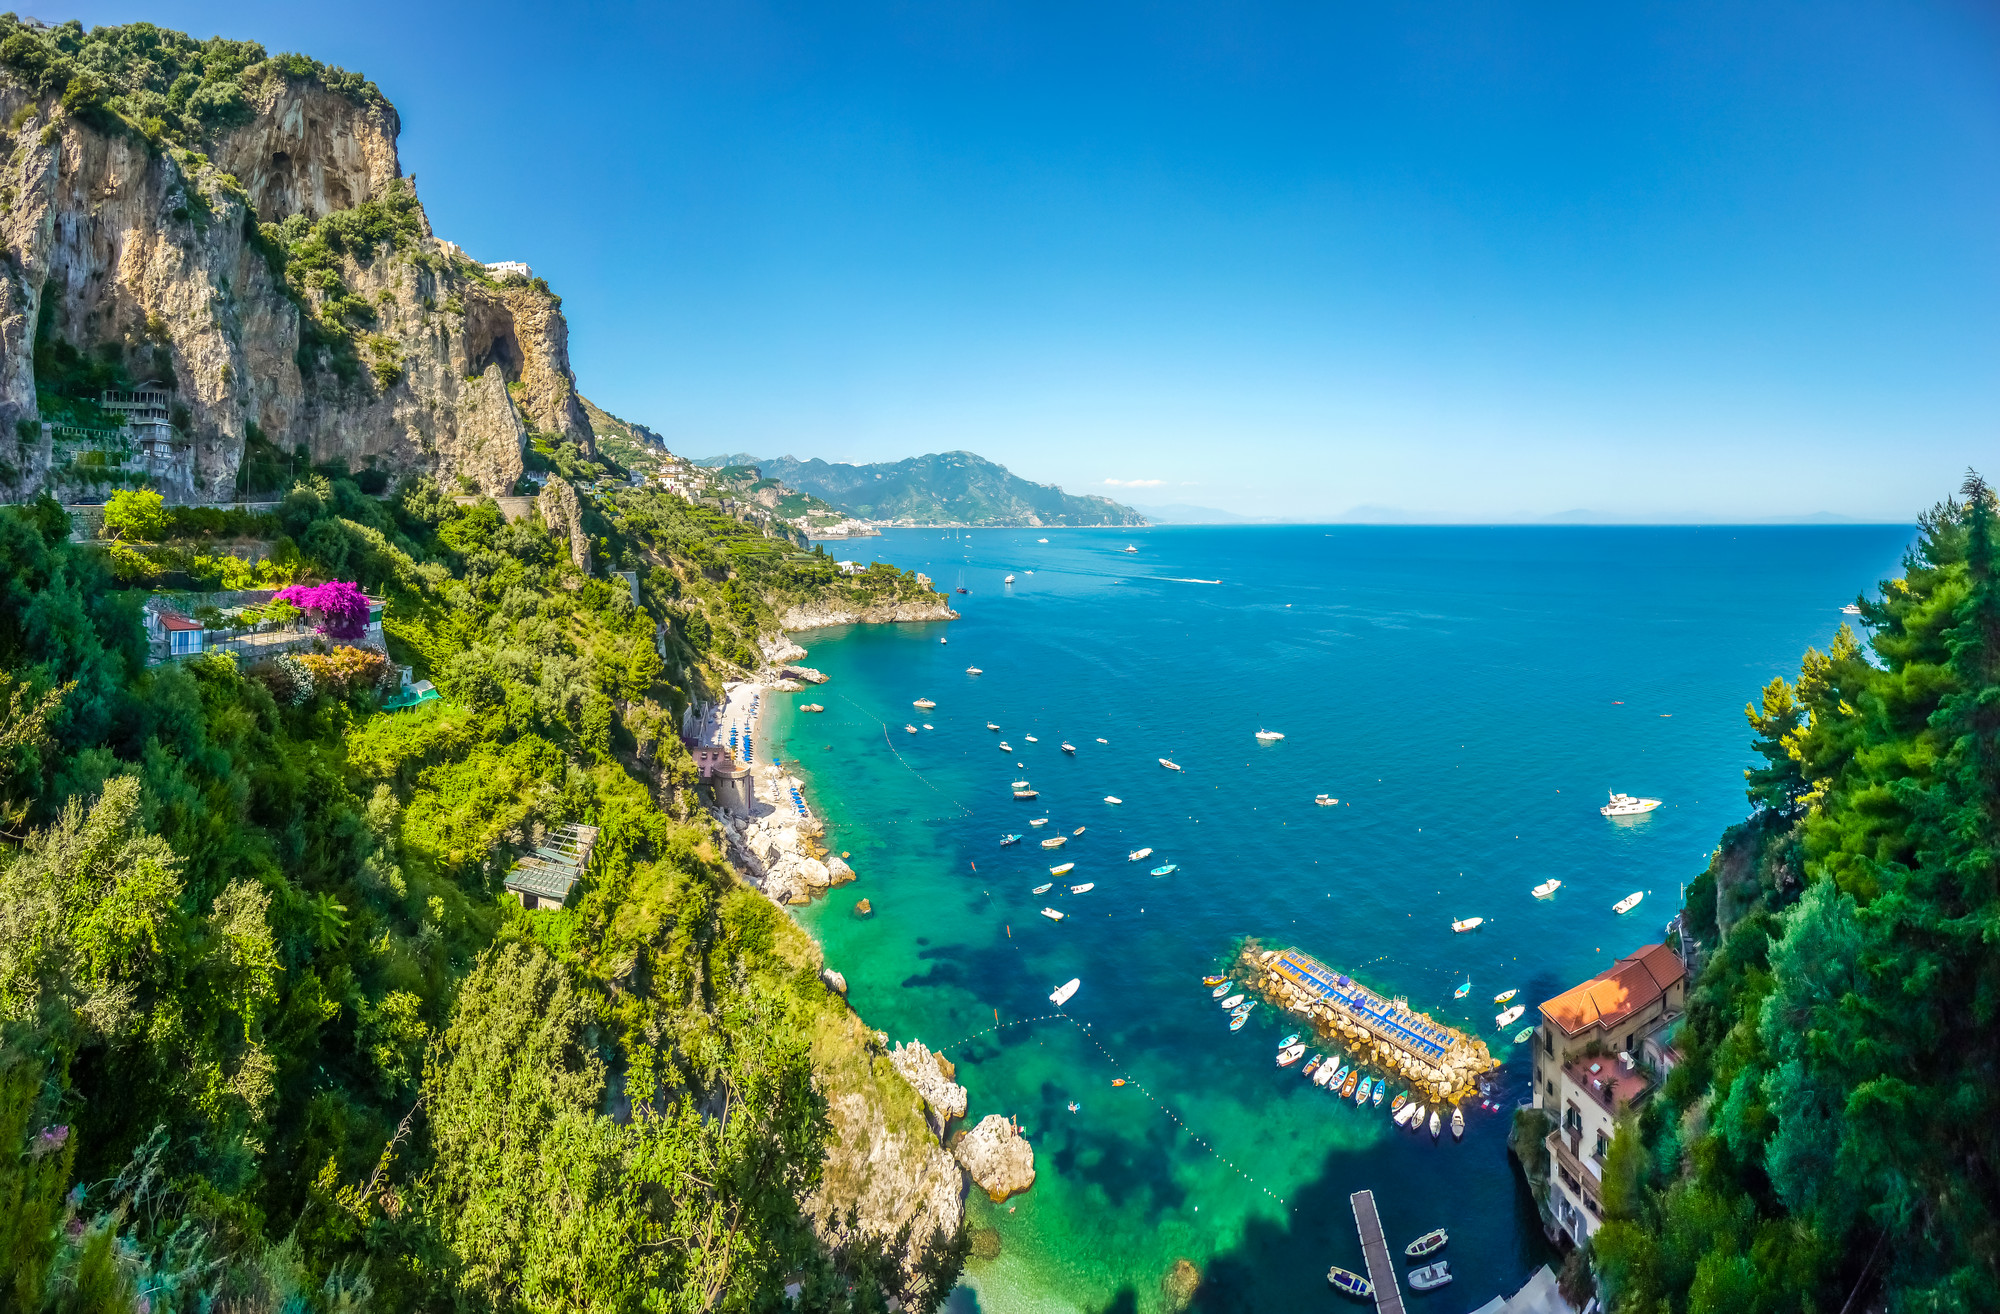 Scenic picture-postcard view of famous Amalfi Coast with beautiful Gulf of Salerno, Campania, Italy. Ischia, island of thermal springs.